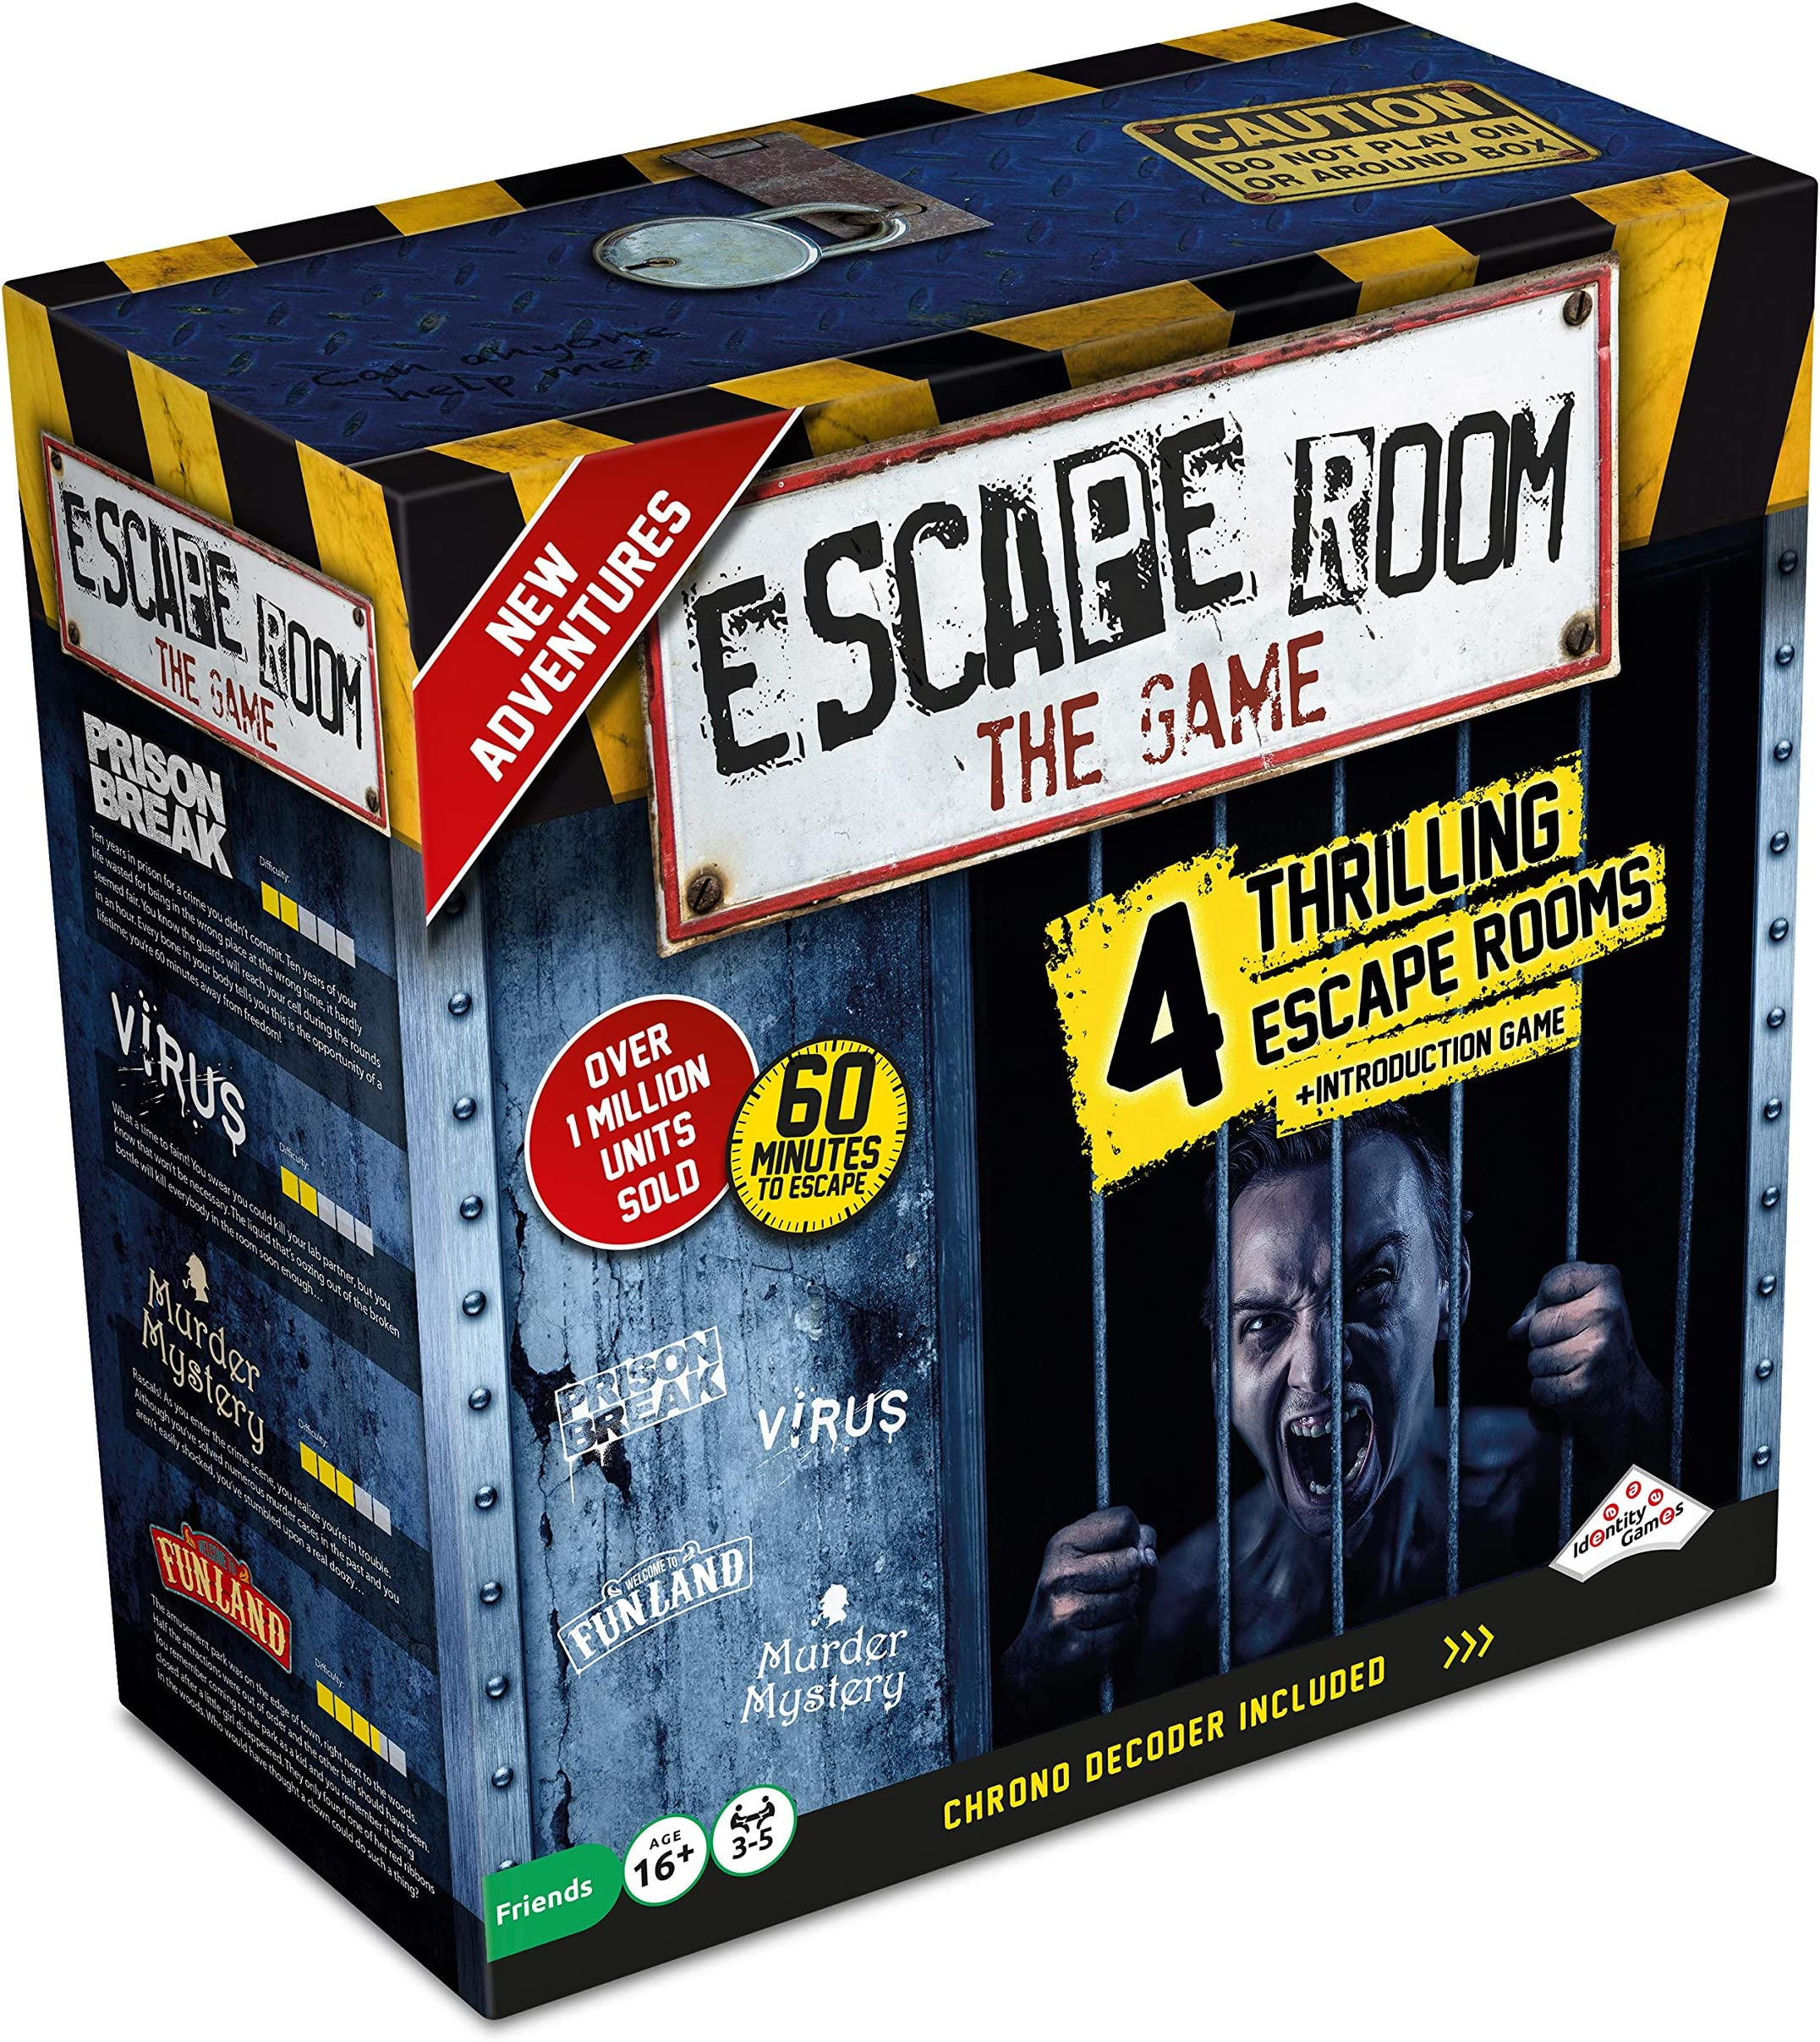 Escape Room The Game, Version 2 - with 4 Thrilling Escape Rooms | Solve The Mystery Board Game for Adults and Teens